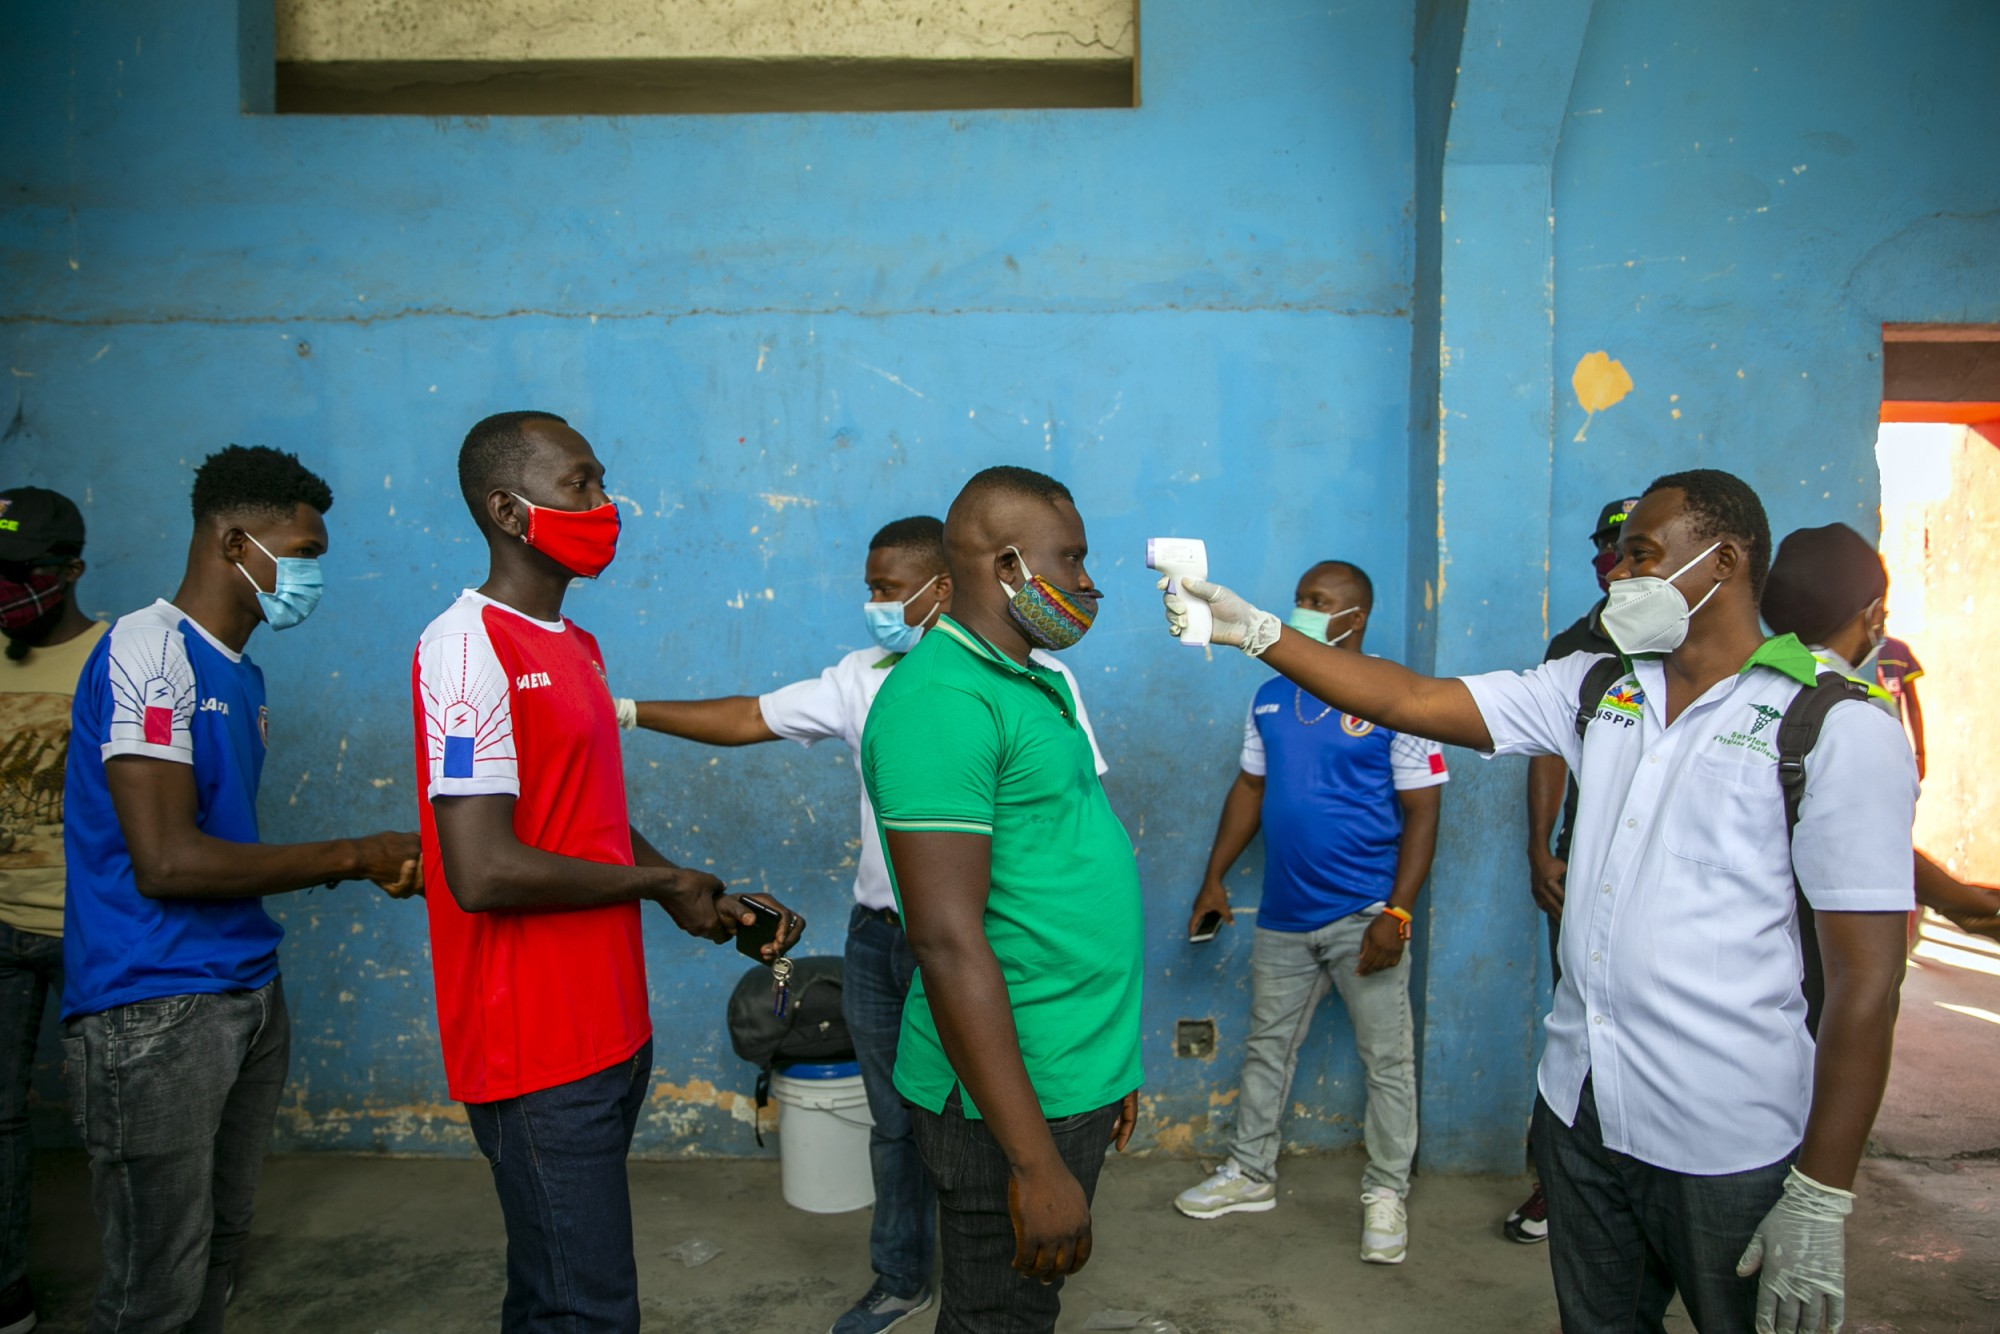 Health ministry workers check the temperature of mask-wearing fans prior to the start of a soccer match in Port-au-Prince, Haiti, on March 25, 2021.